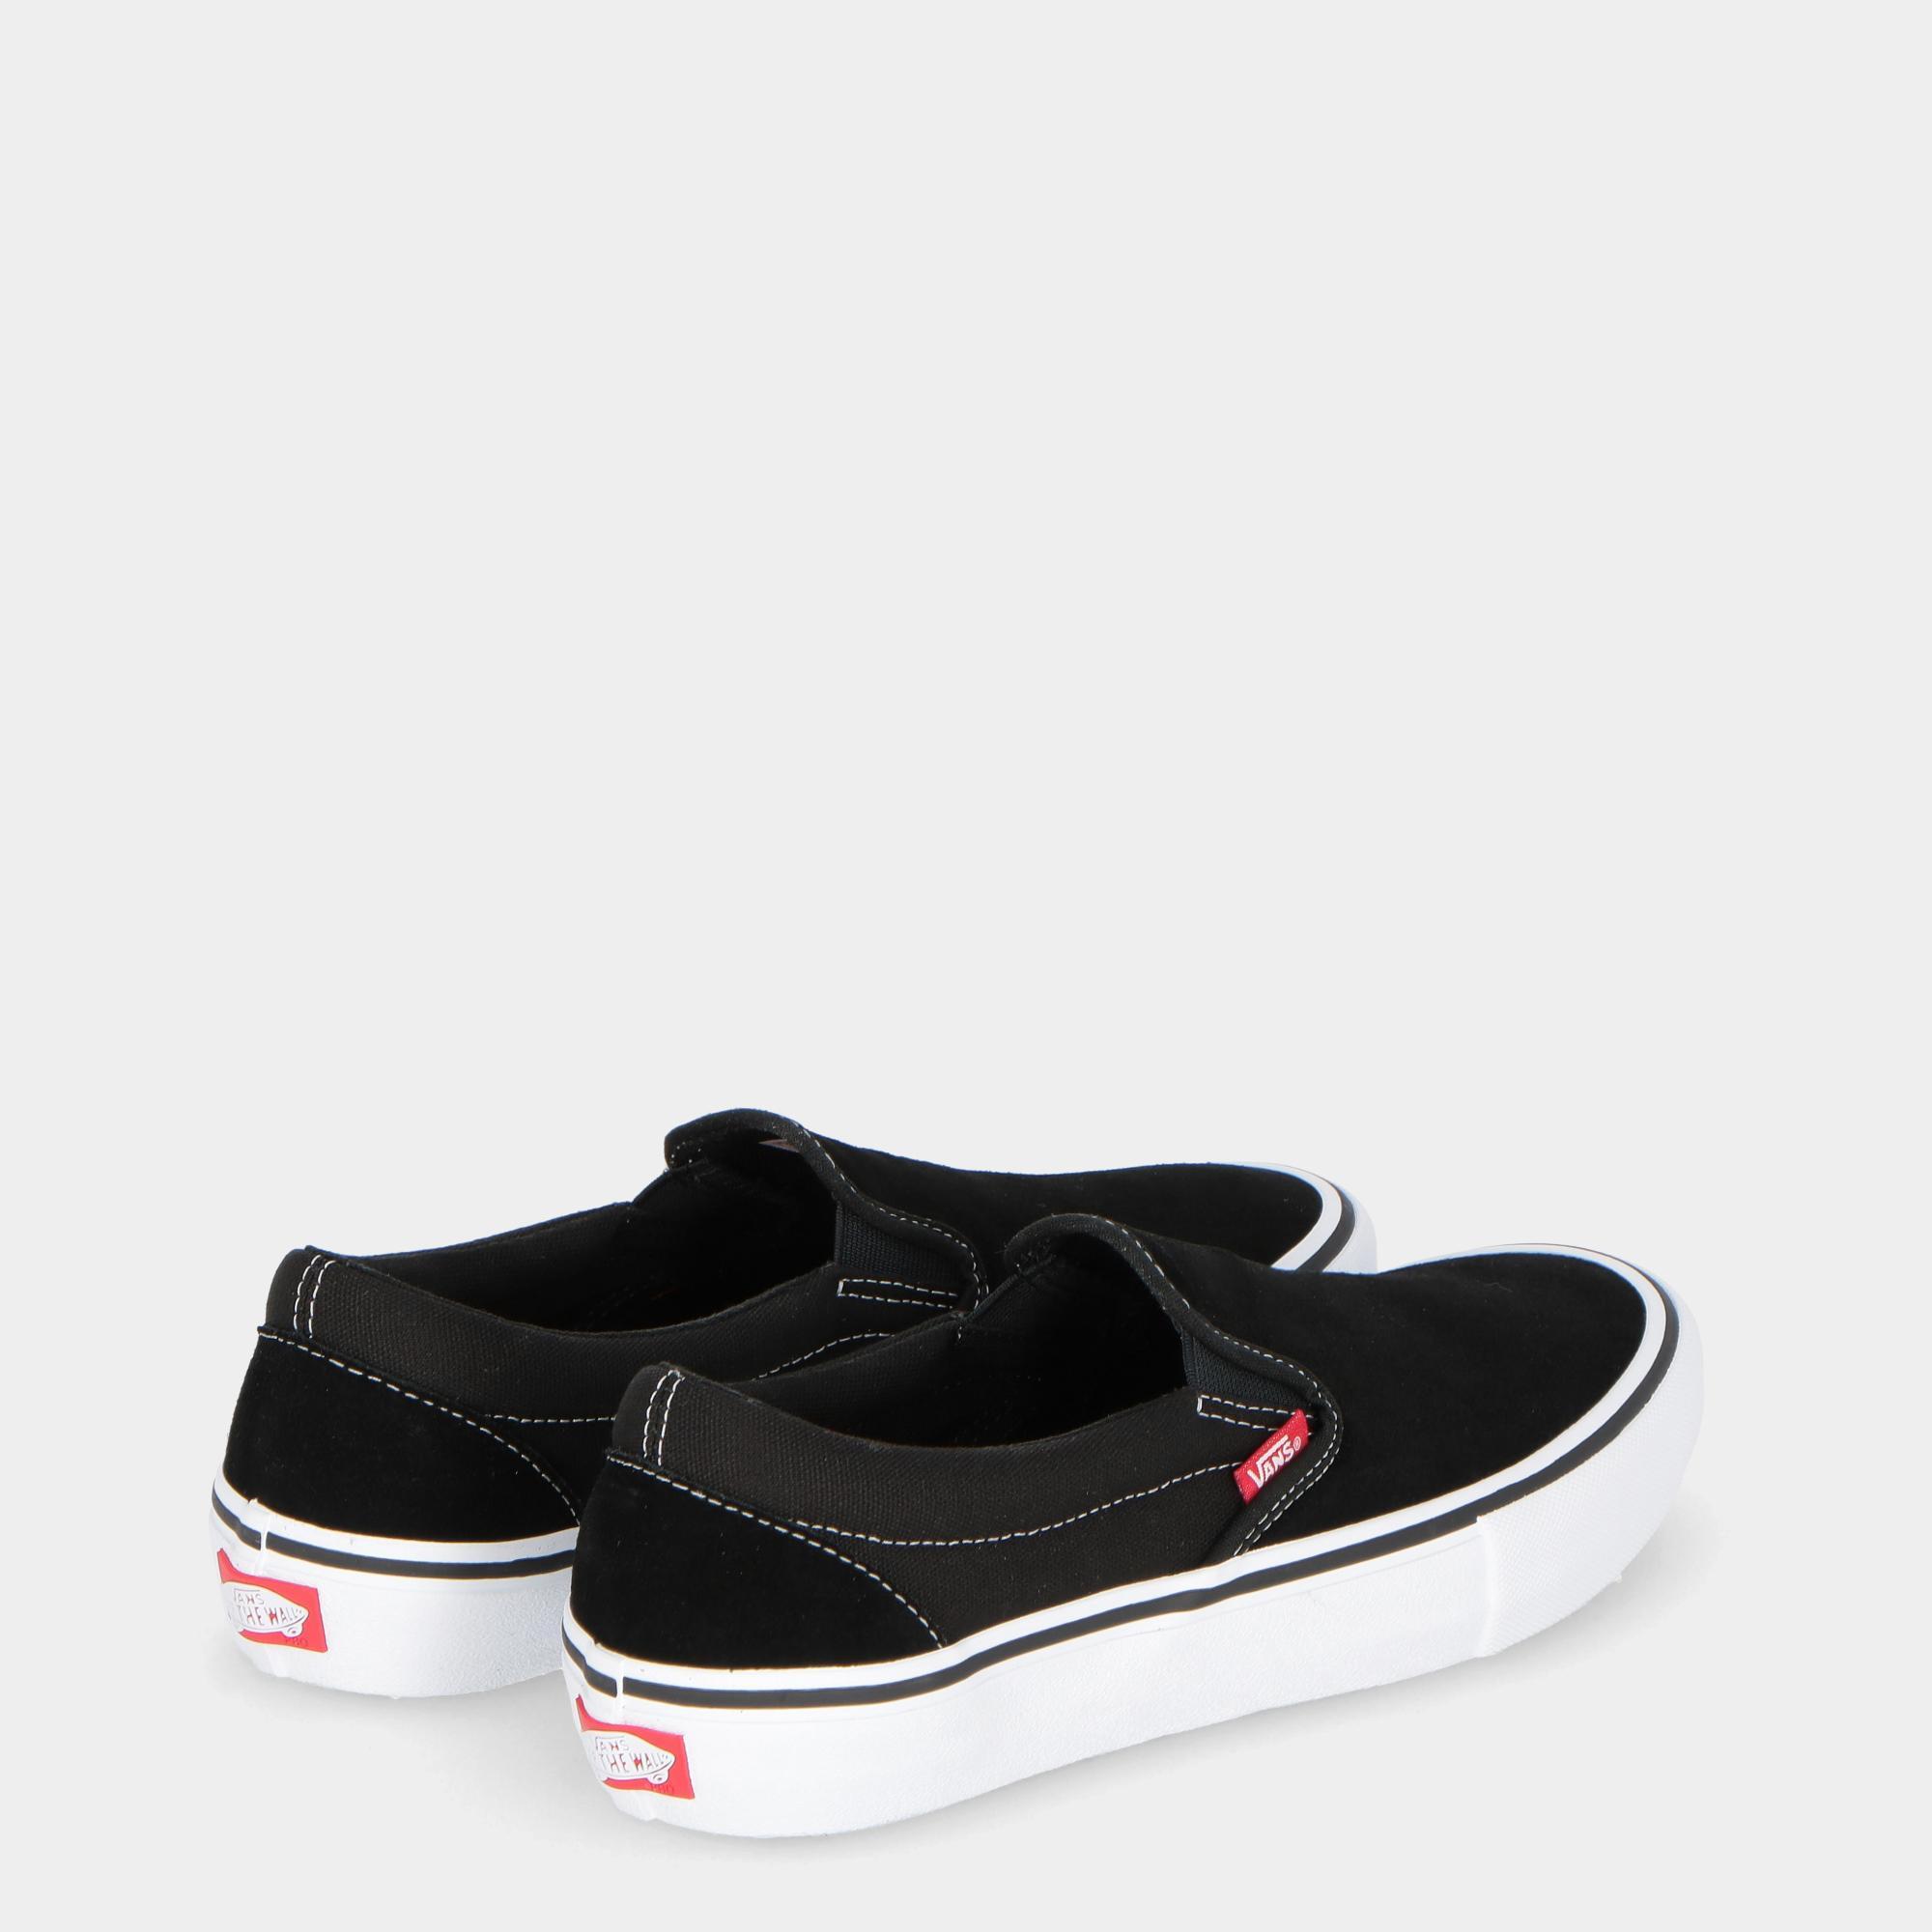 67fe7744a392ef Vans Slip On Pro Black White Gum